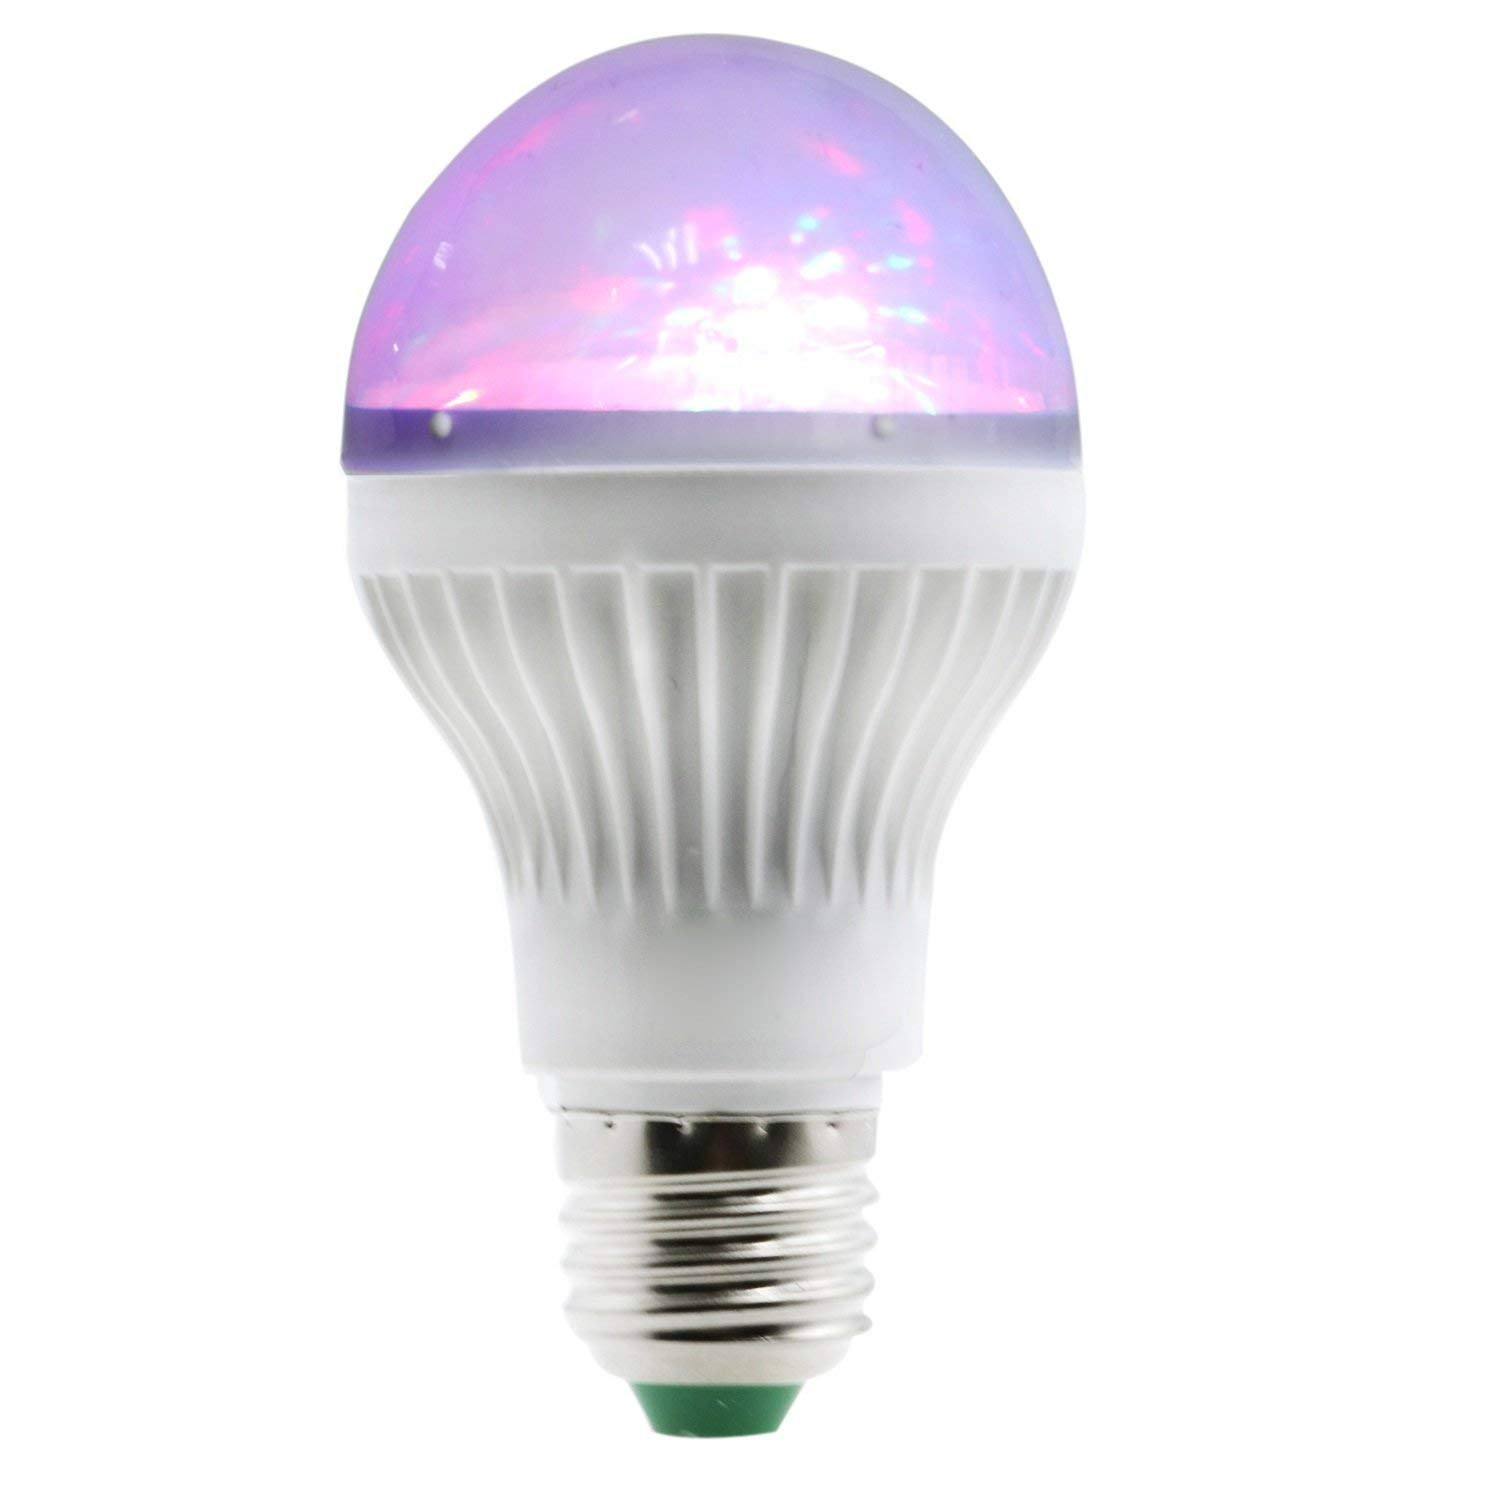 Led Bulbs Rgb Led Bulb E27 E14 16 Color Changing Light Candle Bulb Rgb Led Spotlight Lamp Ac85 265v Cheap Changing Light Bulbs Find Changing Light Bulbs Deals On